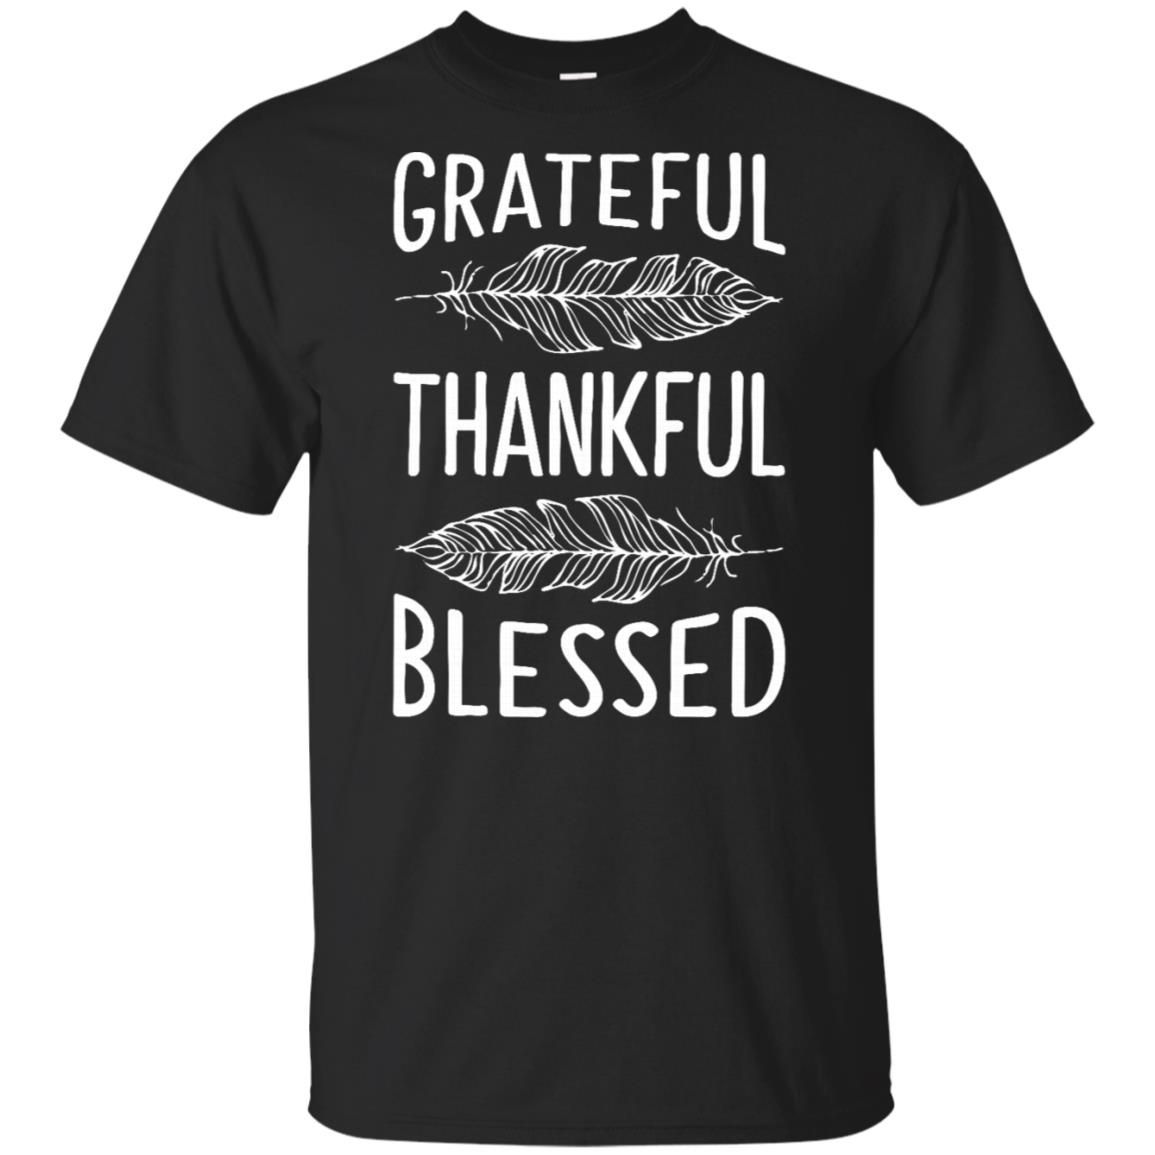 Thanksgivings for Women Grateful Thankful Blessed Tee Unisex Short Sleeve